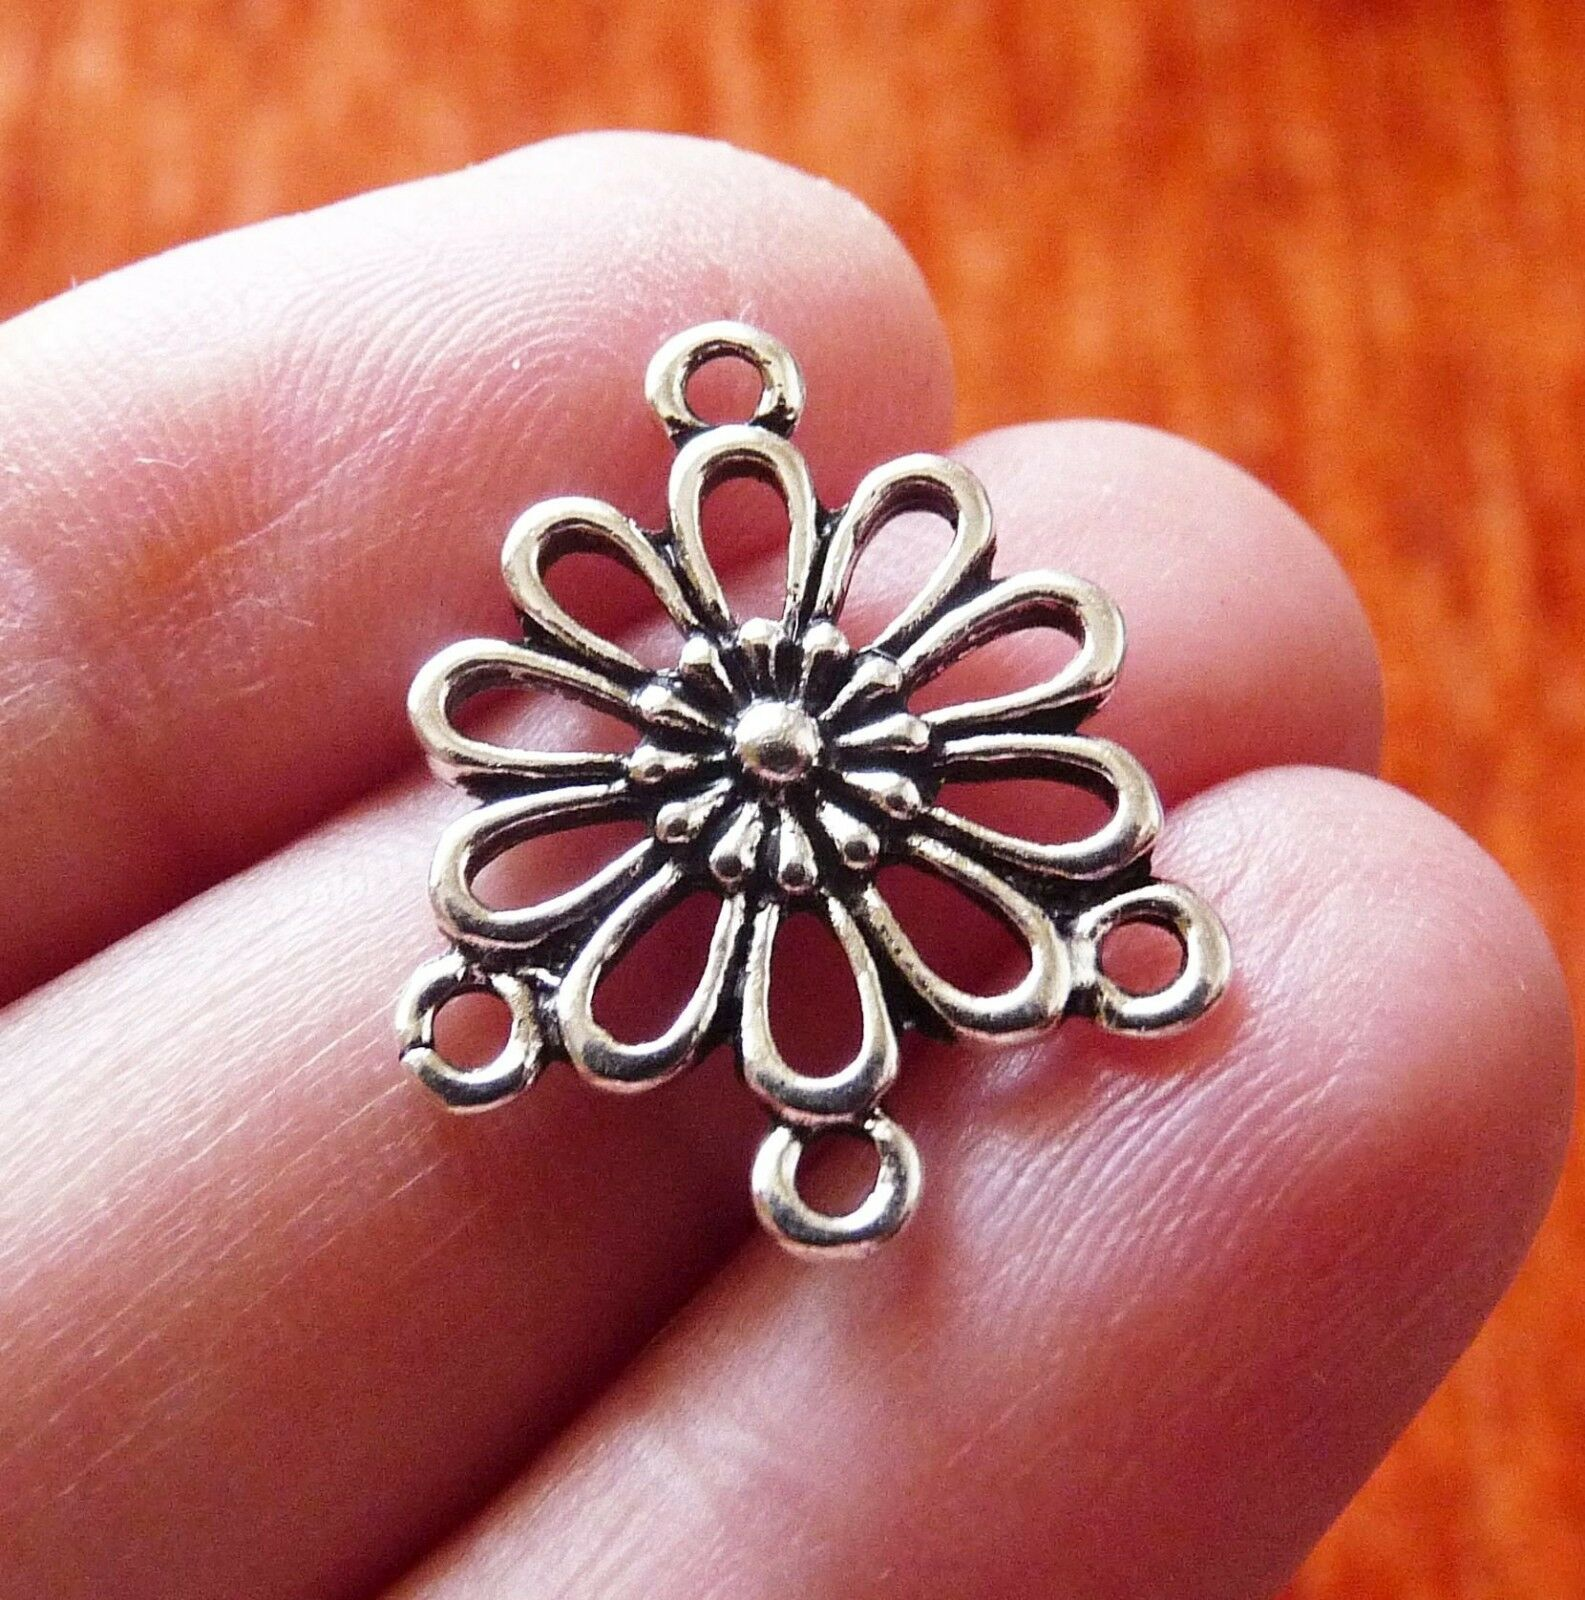 6 Flower Chandelier Earring Finding Necklace Connector Charm for Bracelet Silver